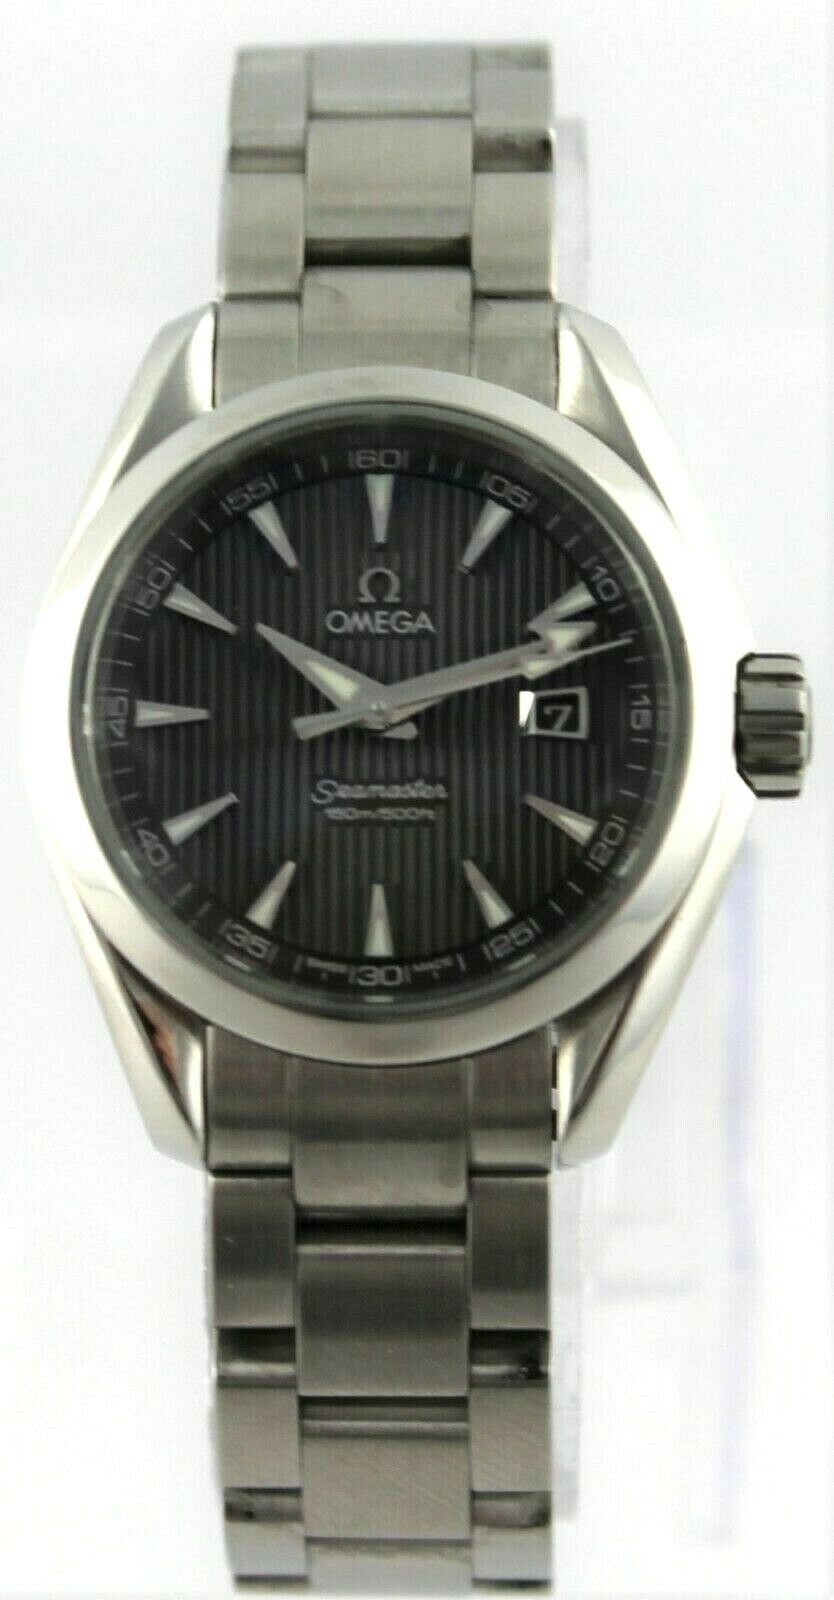 GENUINE OMEGA SEAMASTER AQUA TERRA 231.10.30.61.06.001 SWISS QUARTZ LADIES WATCH